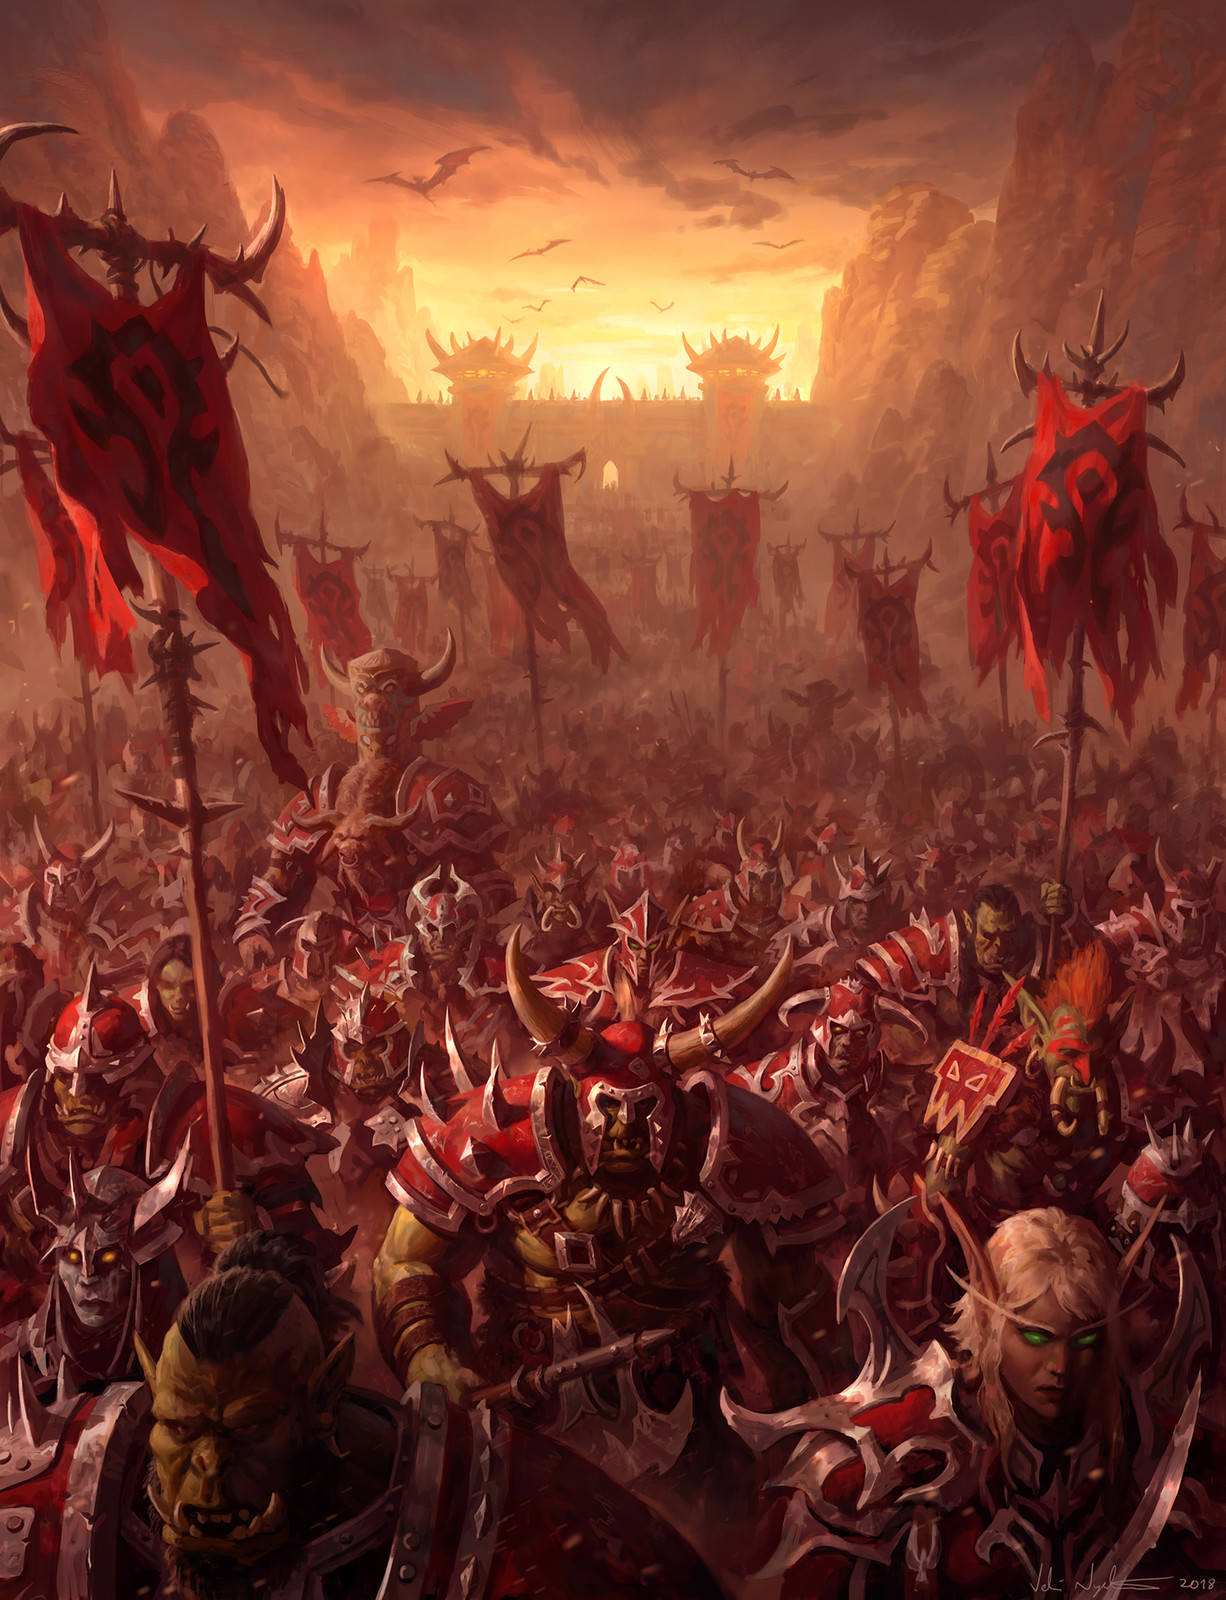 The Horde - WoW: Battle for Azeroth